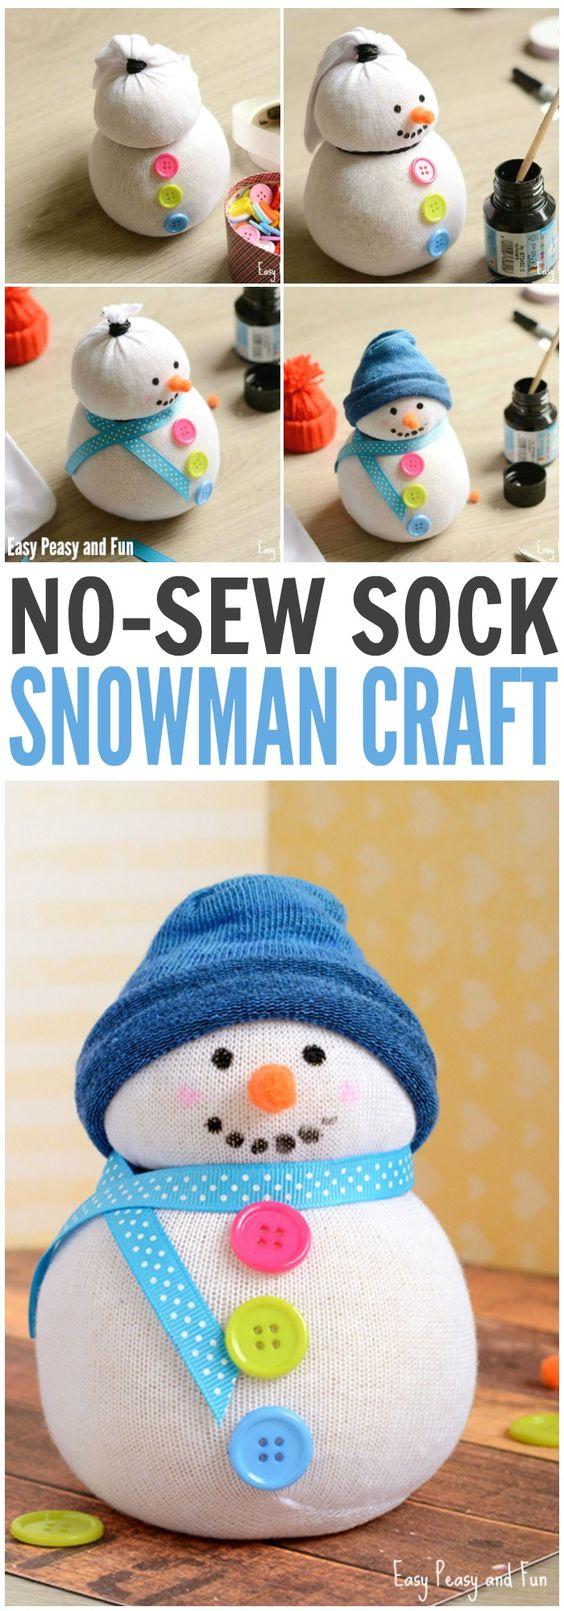 no-sew-sock-snowman-craft